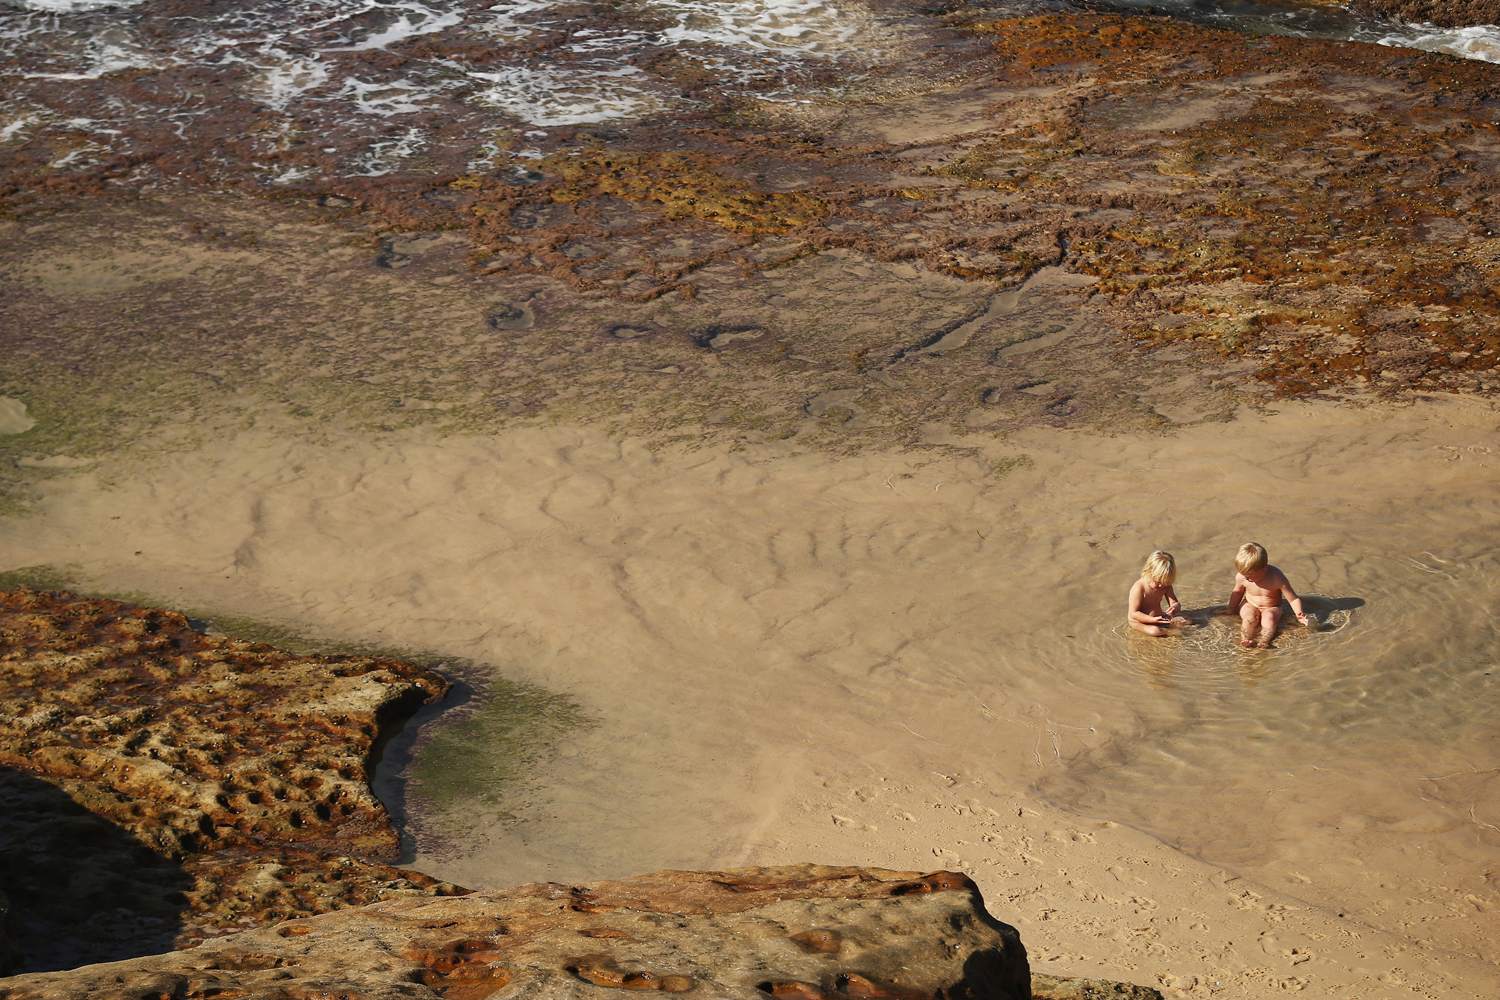 May 23, 2014. Children play in a pond on  in Sydney, Australia. Sydney is experiencing it's hottest May on record, already recording it's hottest week for this time of year in over 150 years.